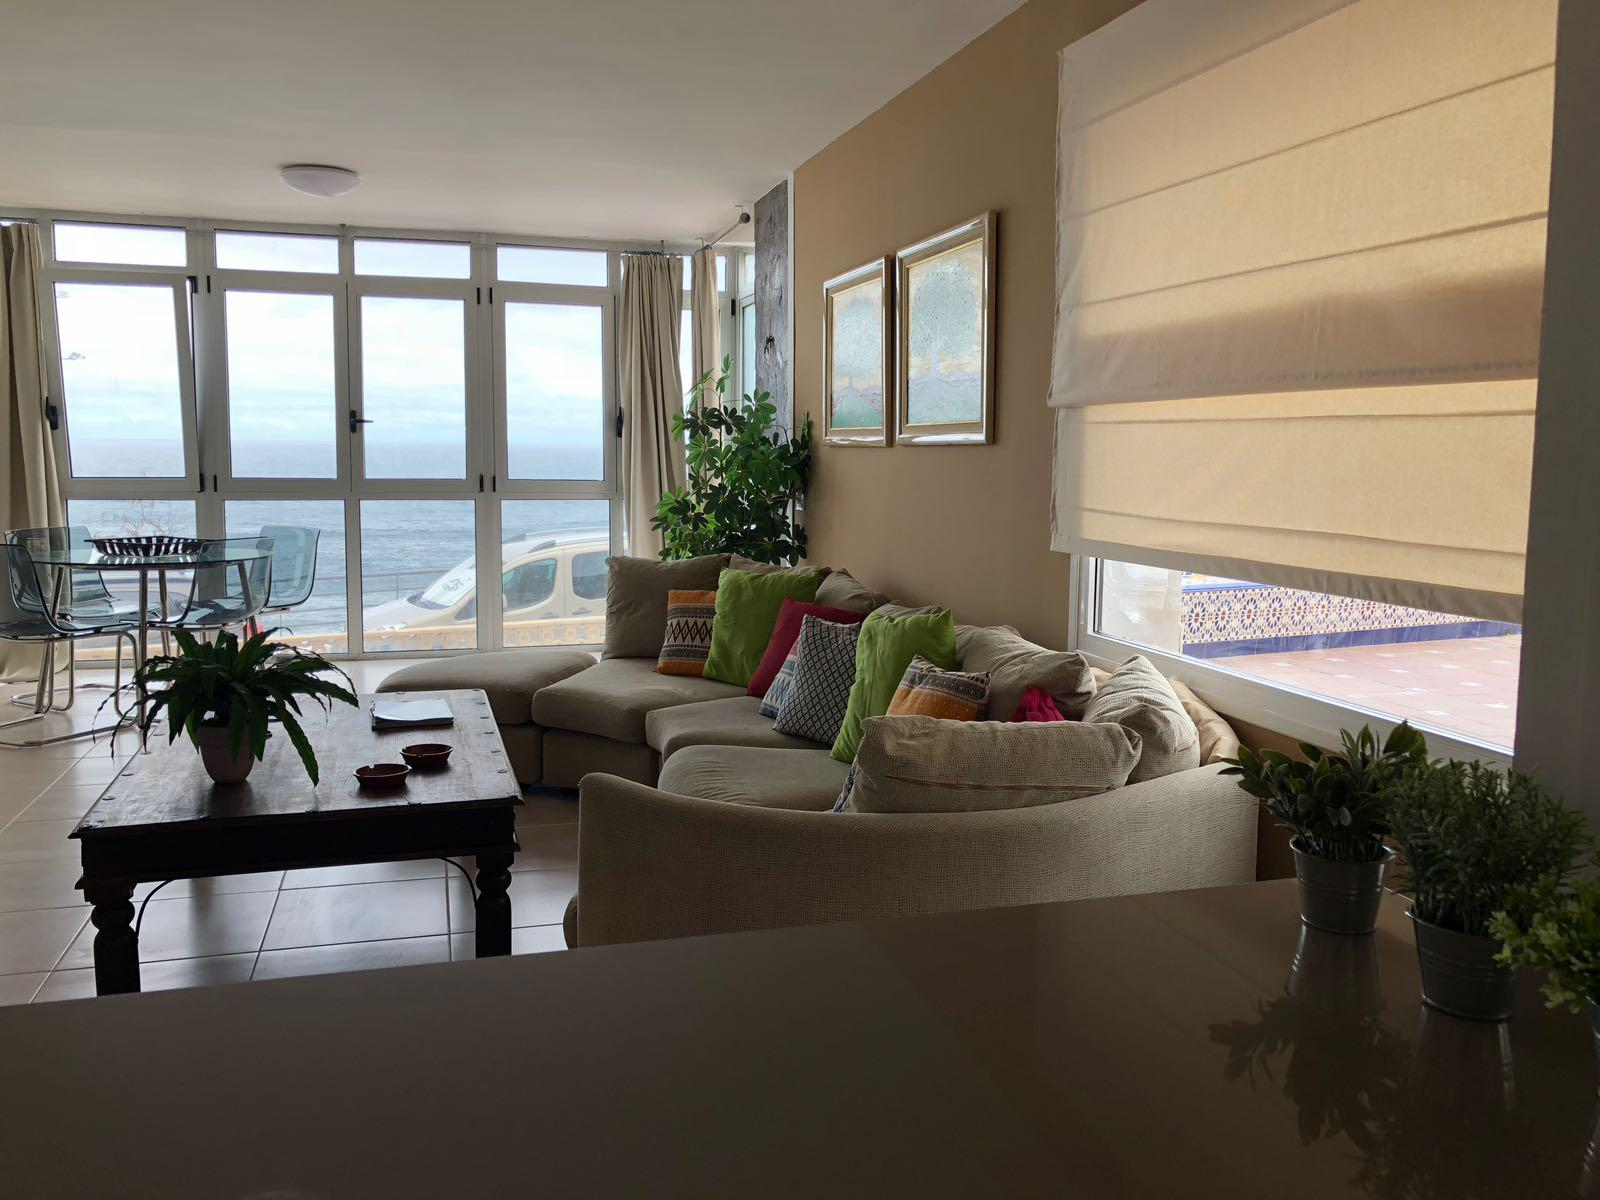 Apartment For Sale in Bajamar